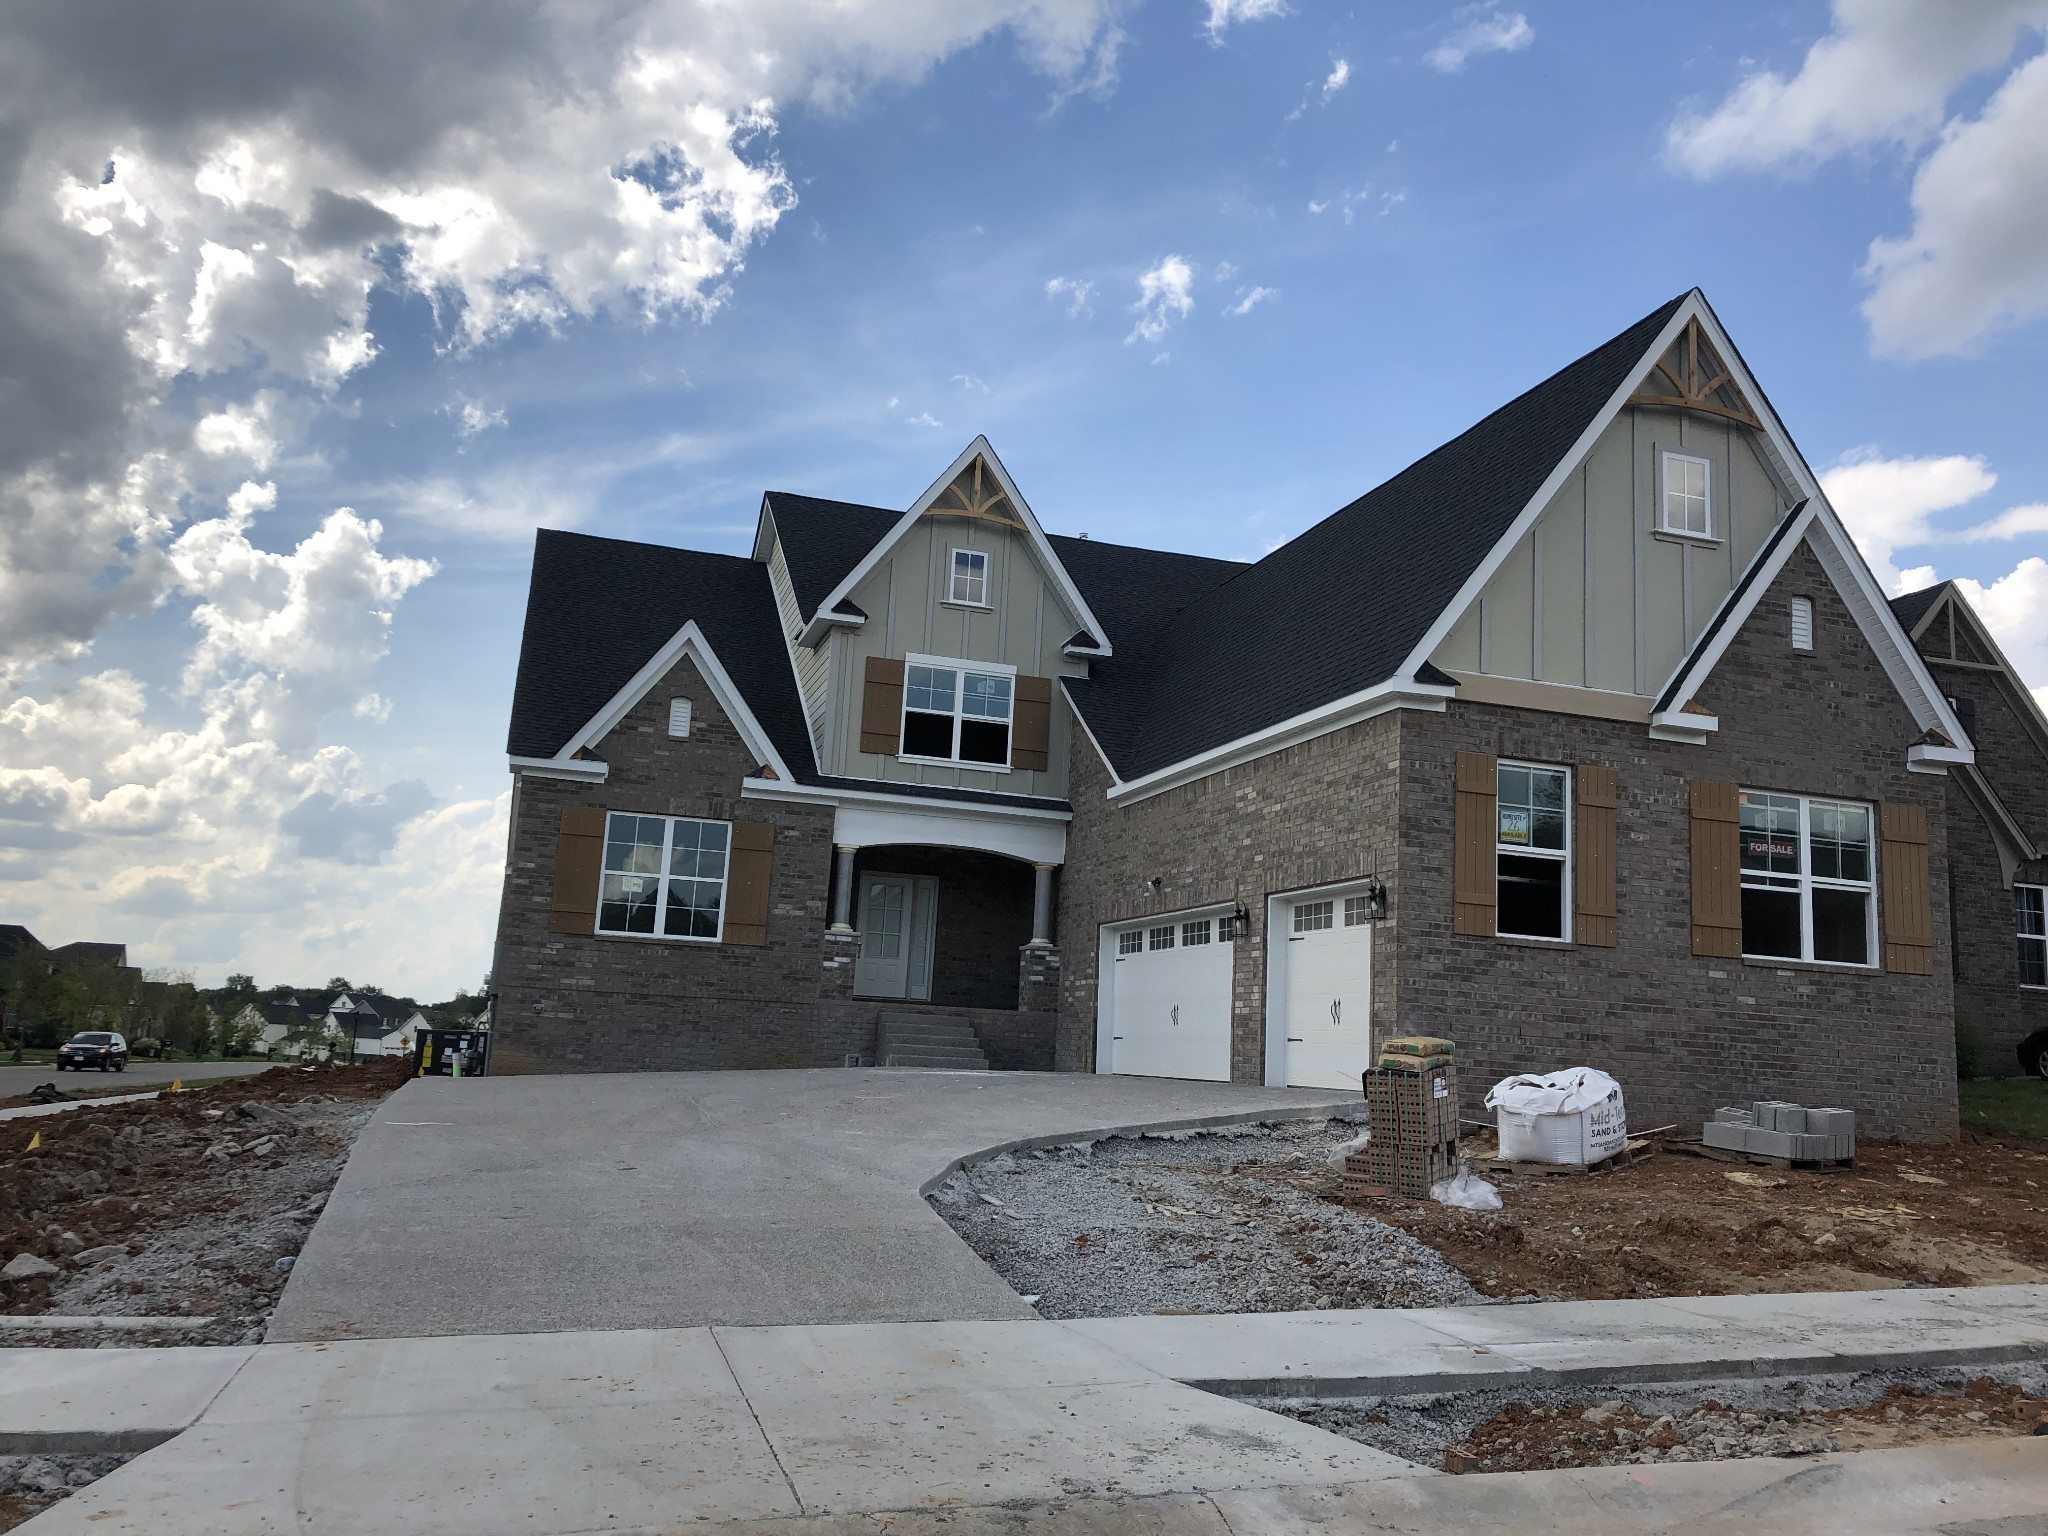 The Beckett plan!  4 bedrooms, 3.5 bathrooms, huge Master suite downstairs, 2 story Foyer, separate Office, wonderful Great Room with lots of light, open to large Kitchen & Dining area, fantastic Bonus Room upstairs.  All bedrooms have walk-in closets.  CORNER LOT!